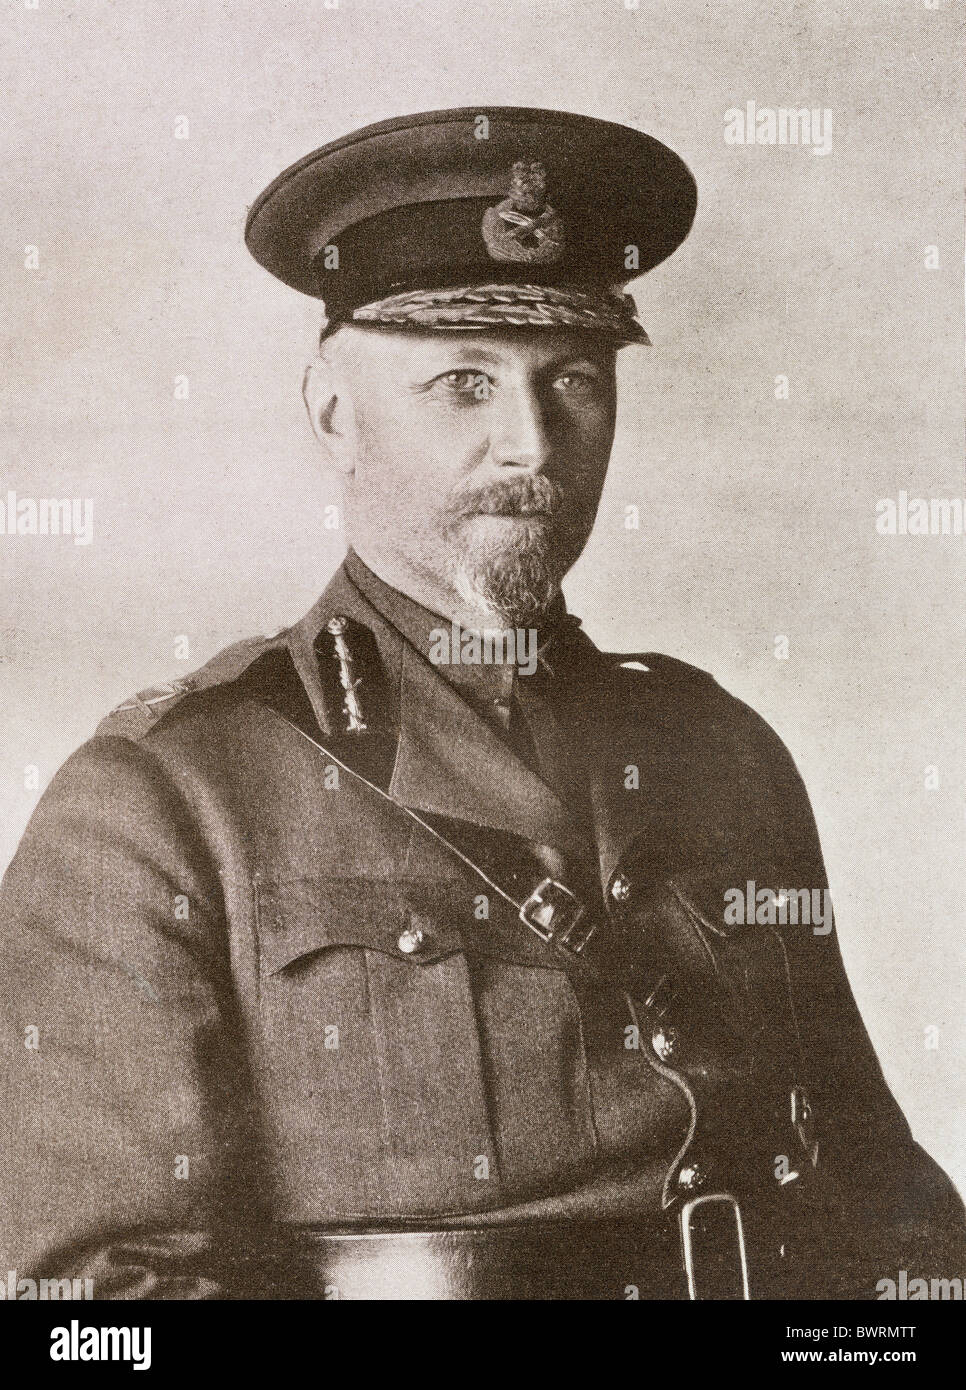 Jan Christiaan Smuts 1870 - 1950. South African statesman and soldier. - Stock Image